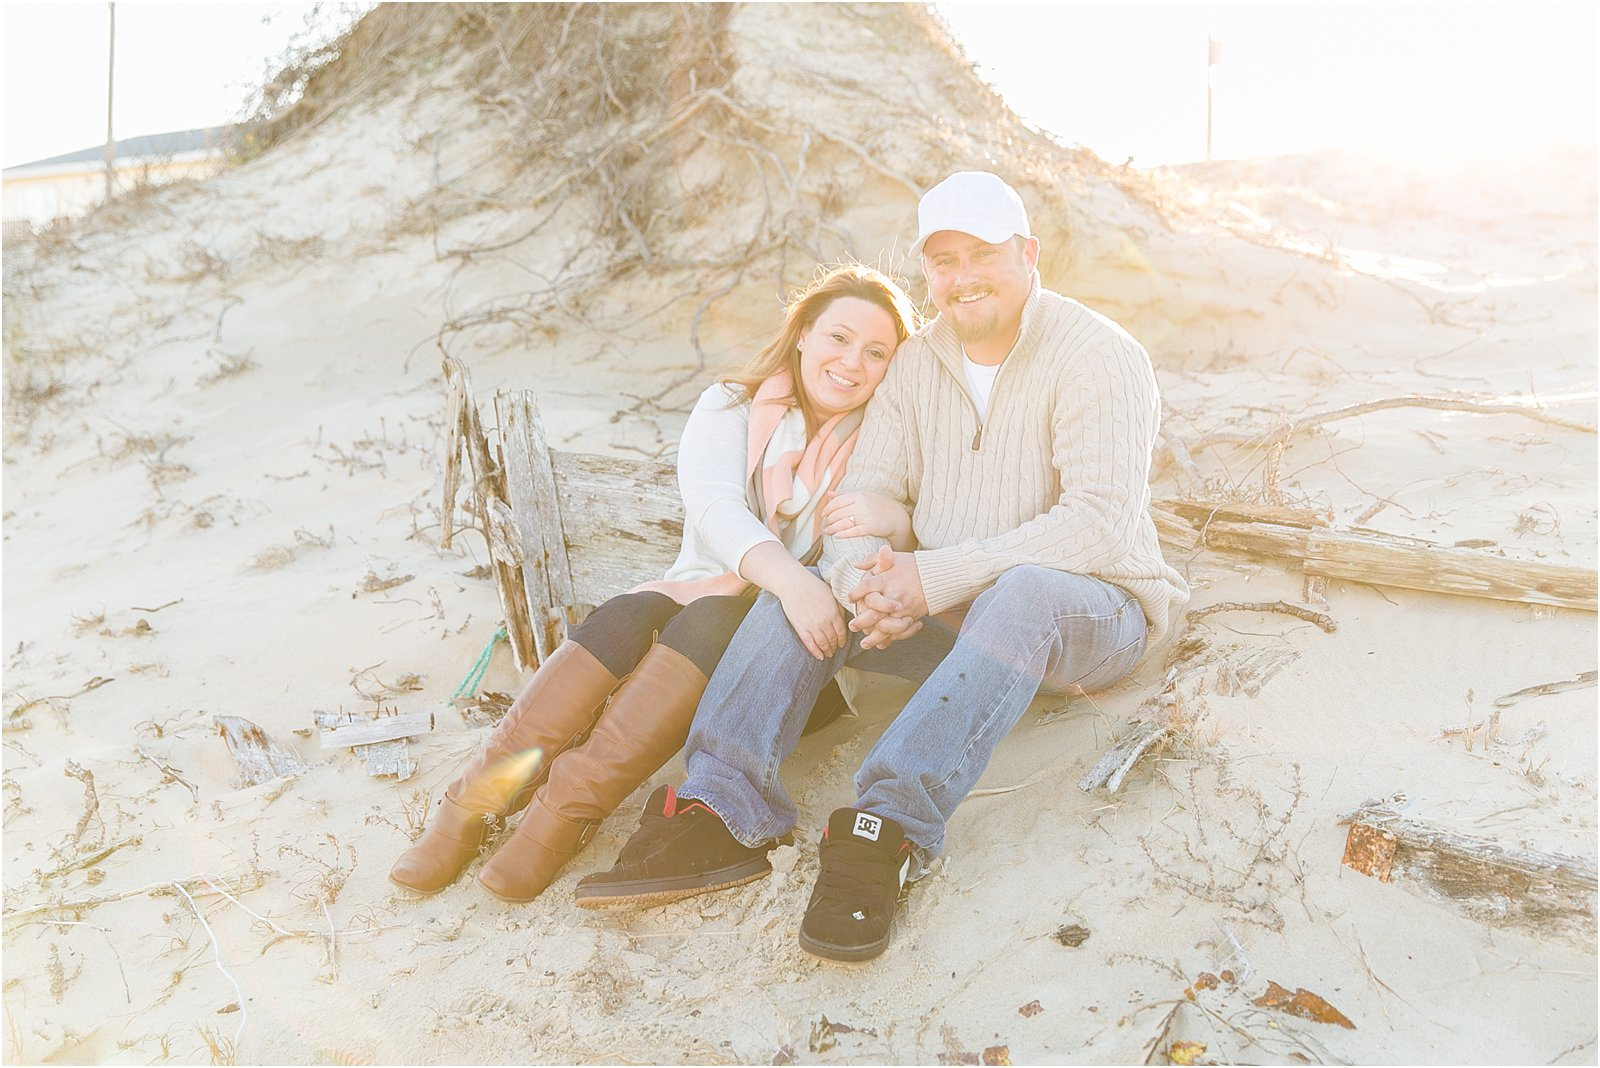 jessica_ryan_photography_pumpkin_patch_engagement_portraits_fall_october_engagements_virginia_beach_chesapeake_0304